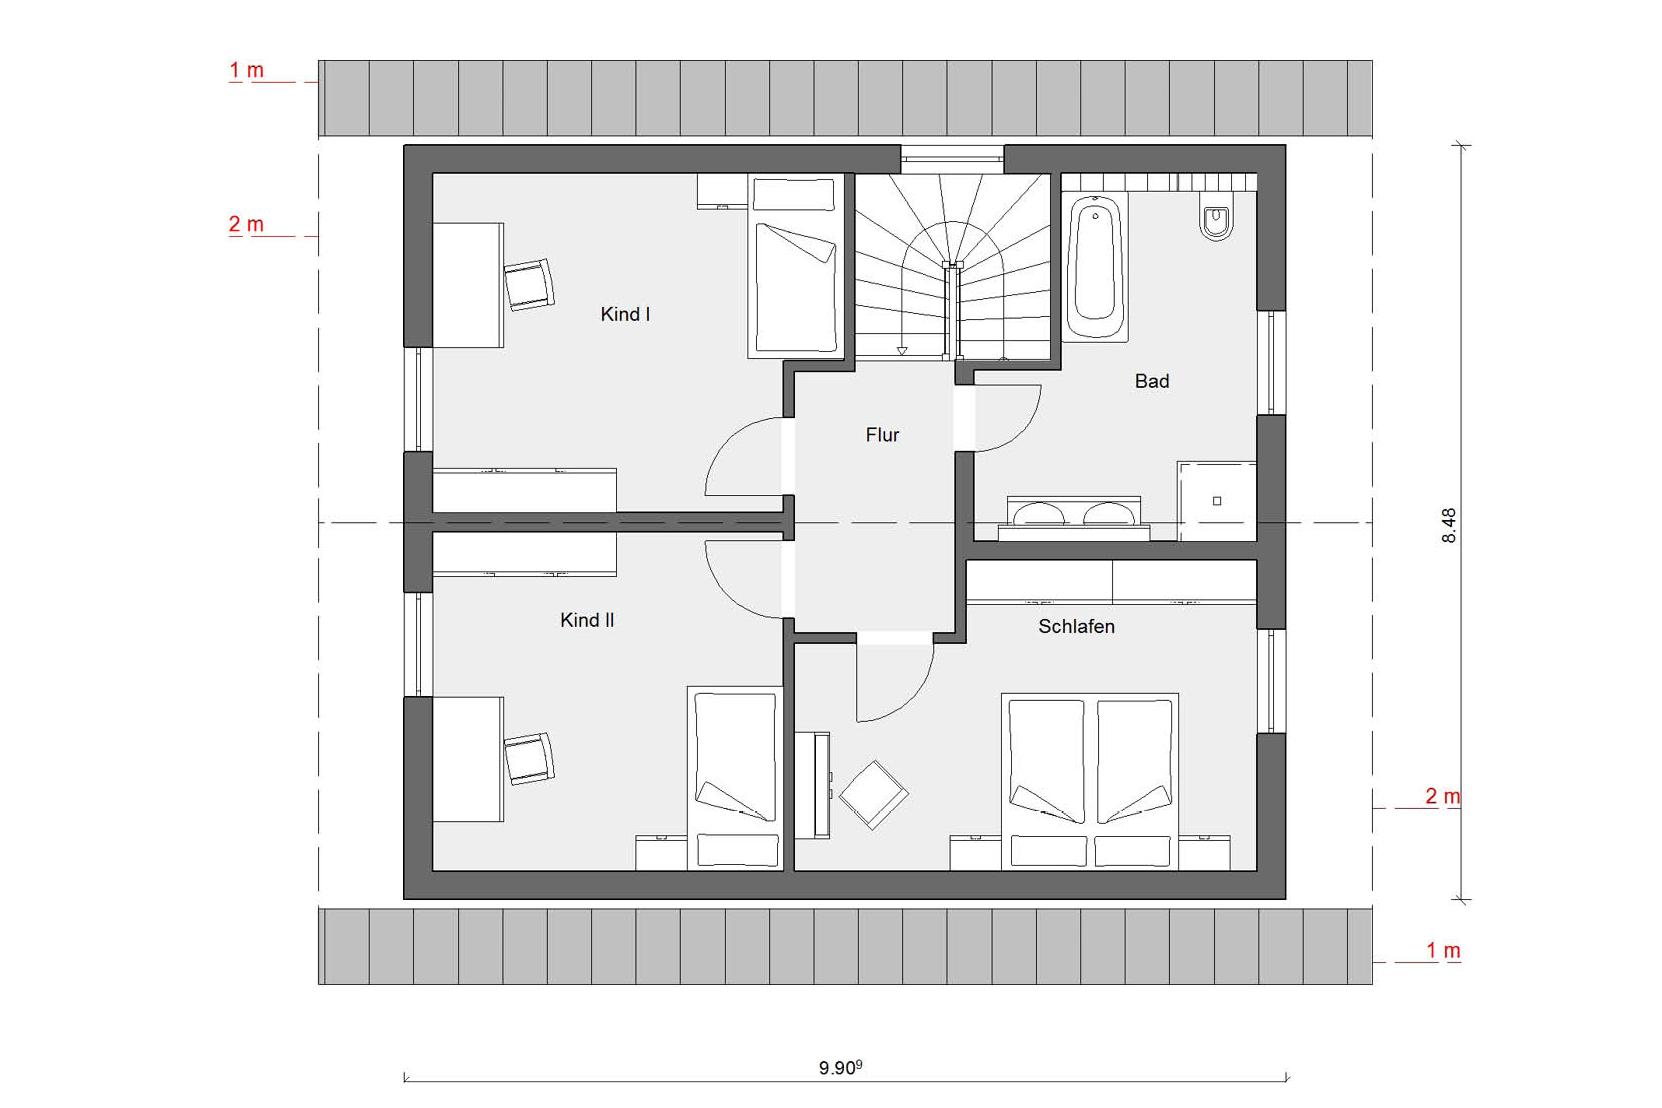 Floor plan attic E 15-137.4 Detached house with pitched roof